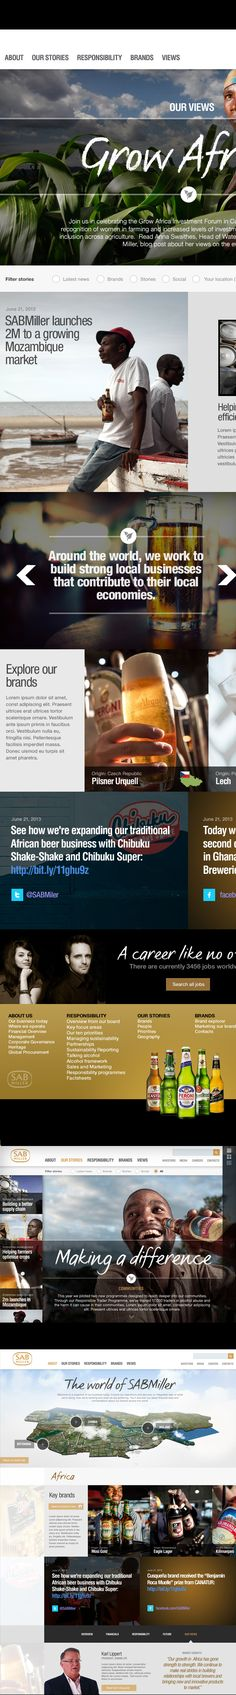 SABMiller.com by Thomas Moeller, via Behance